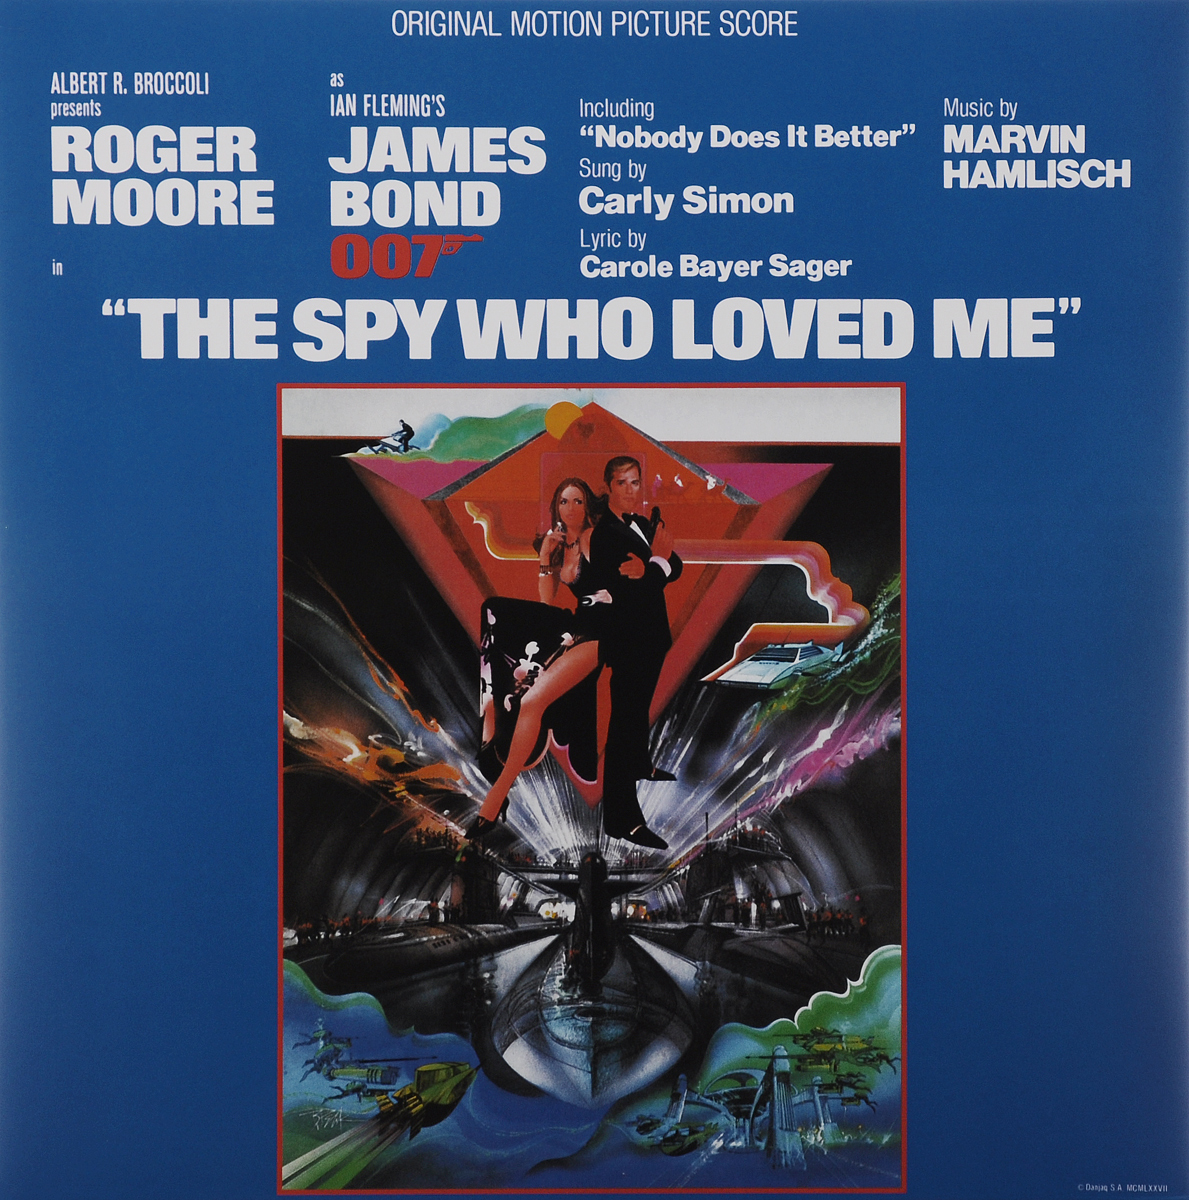 The Spy Who Loved Me. Original Motion Picture Score (LP) the spy who loved me